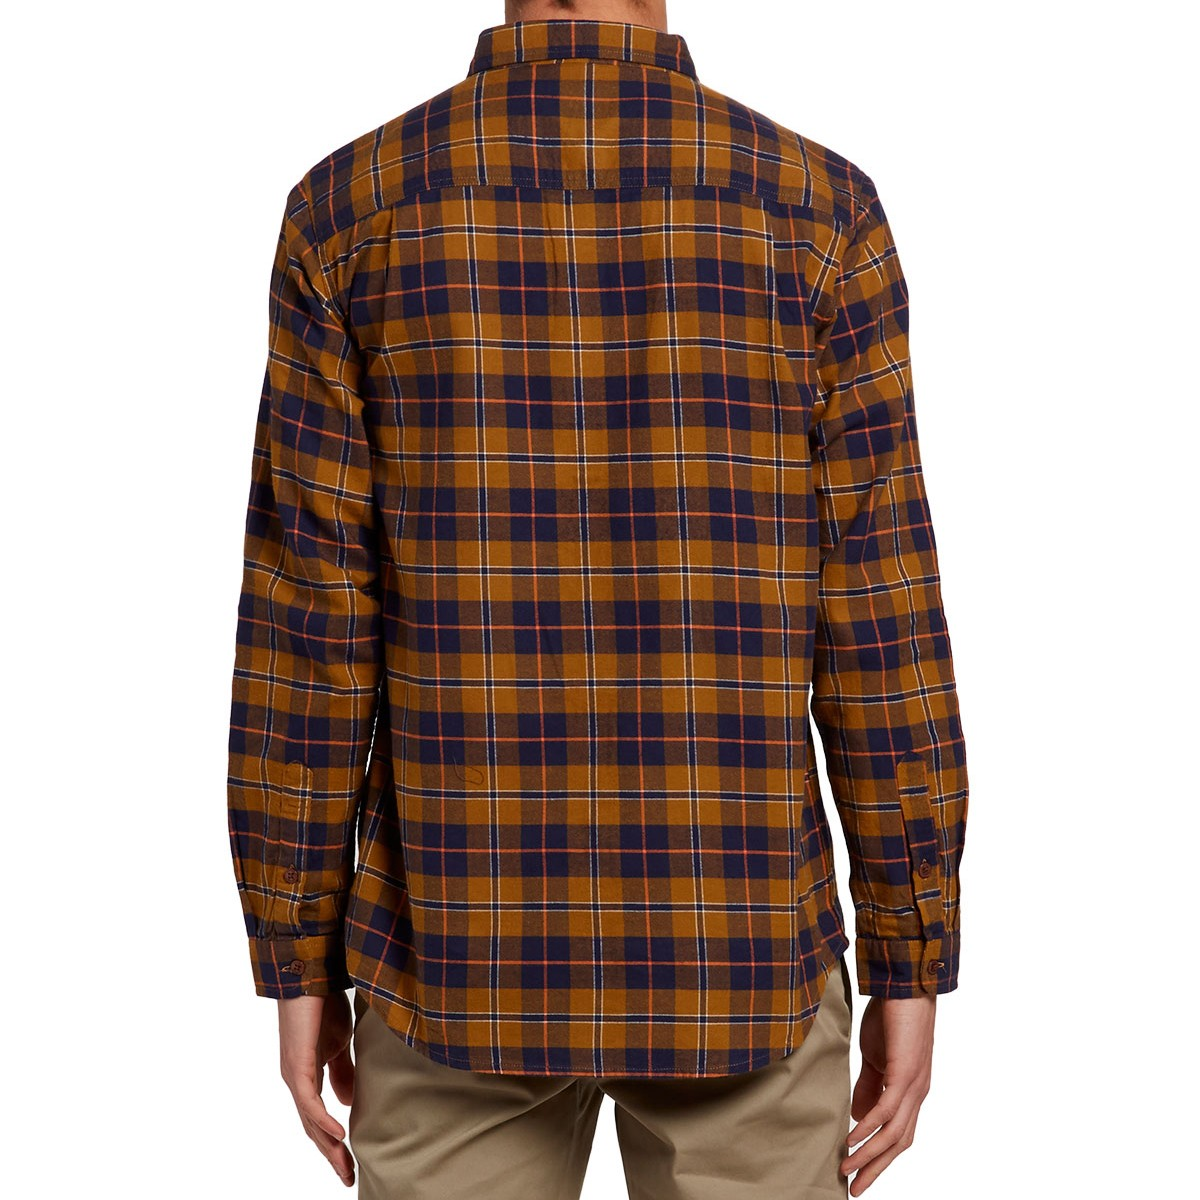 Imperial motion monterey flannel shirt tobacco navy for Best flannel shirt brands